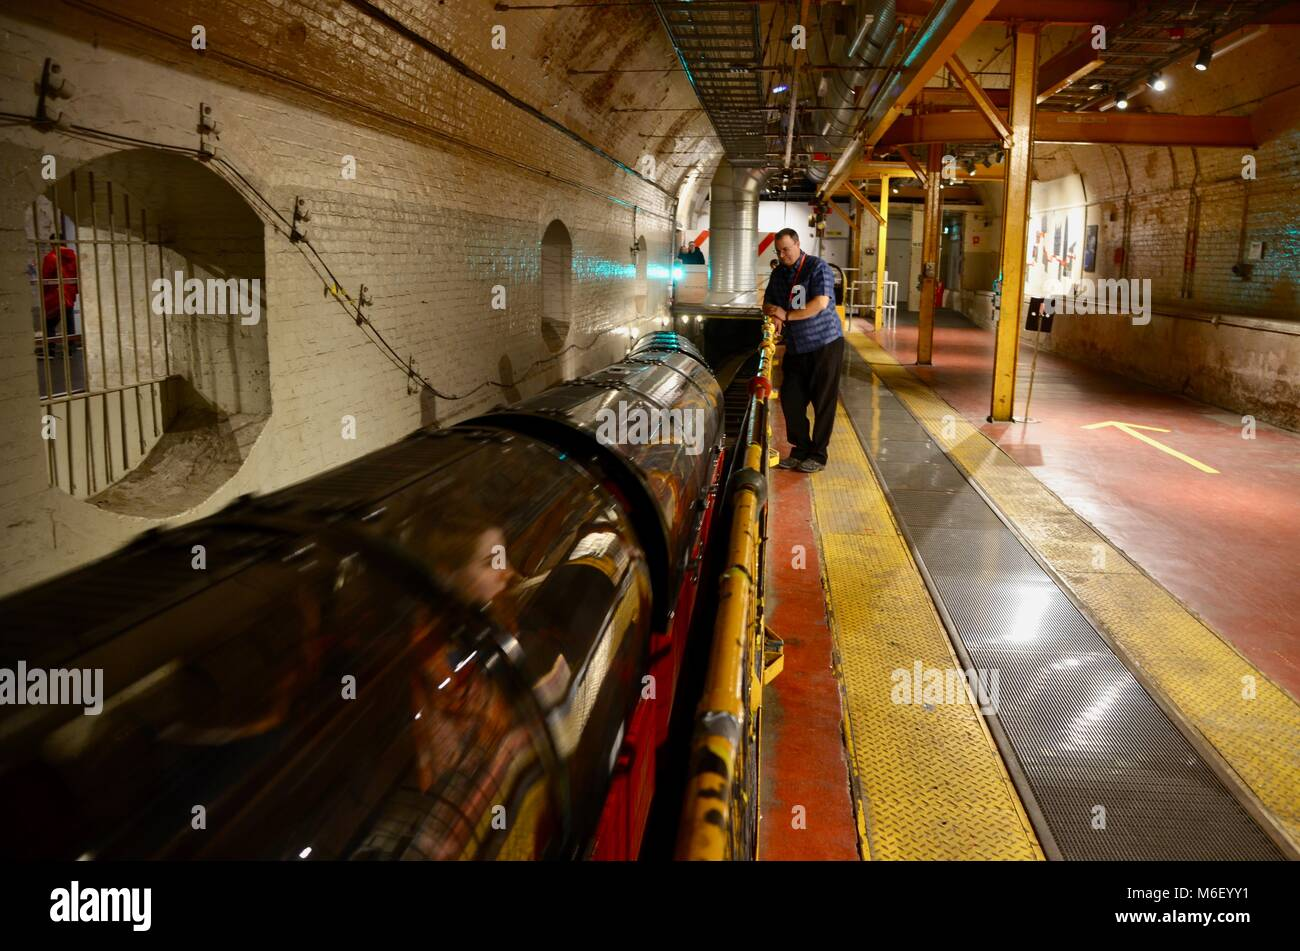 the train at postal museum mount pleasant north london england great britain - Stock Image